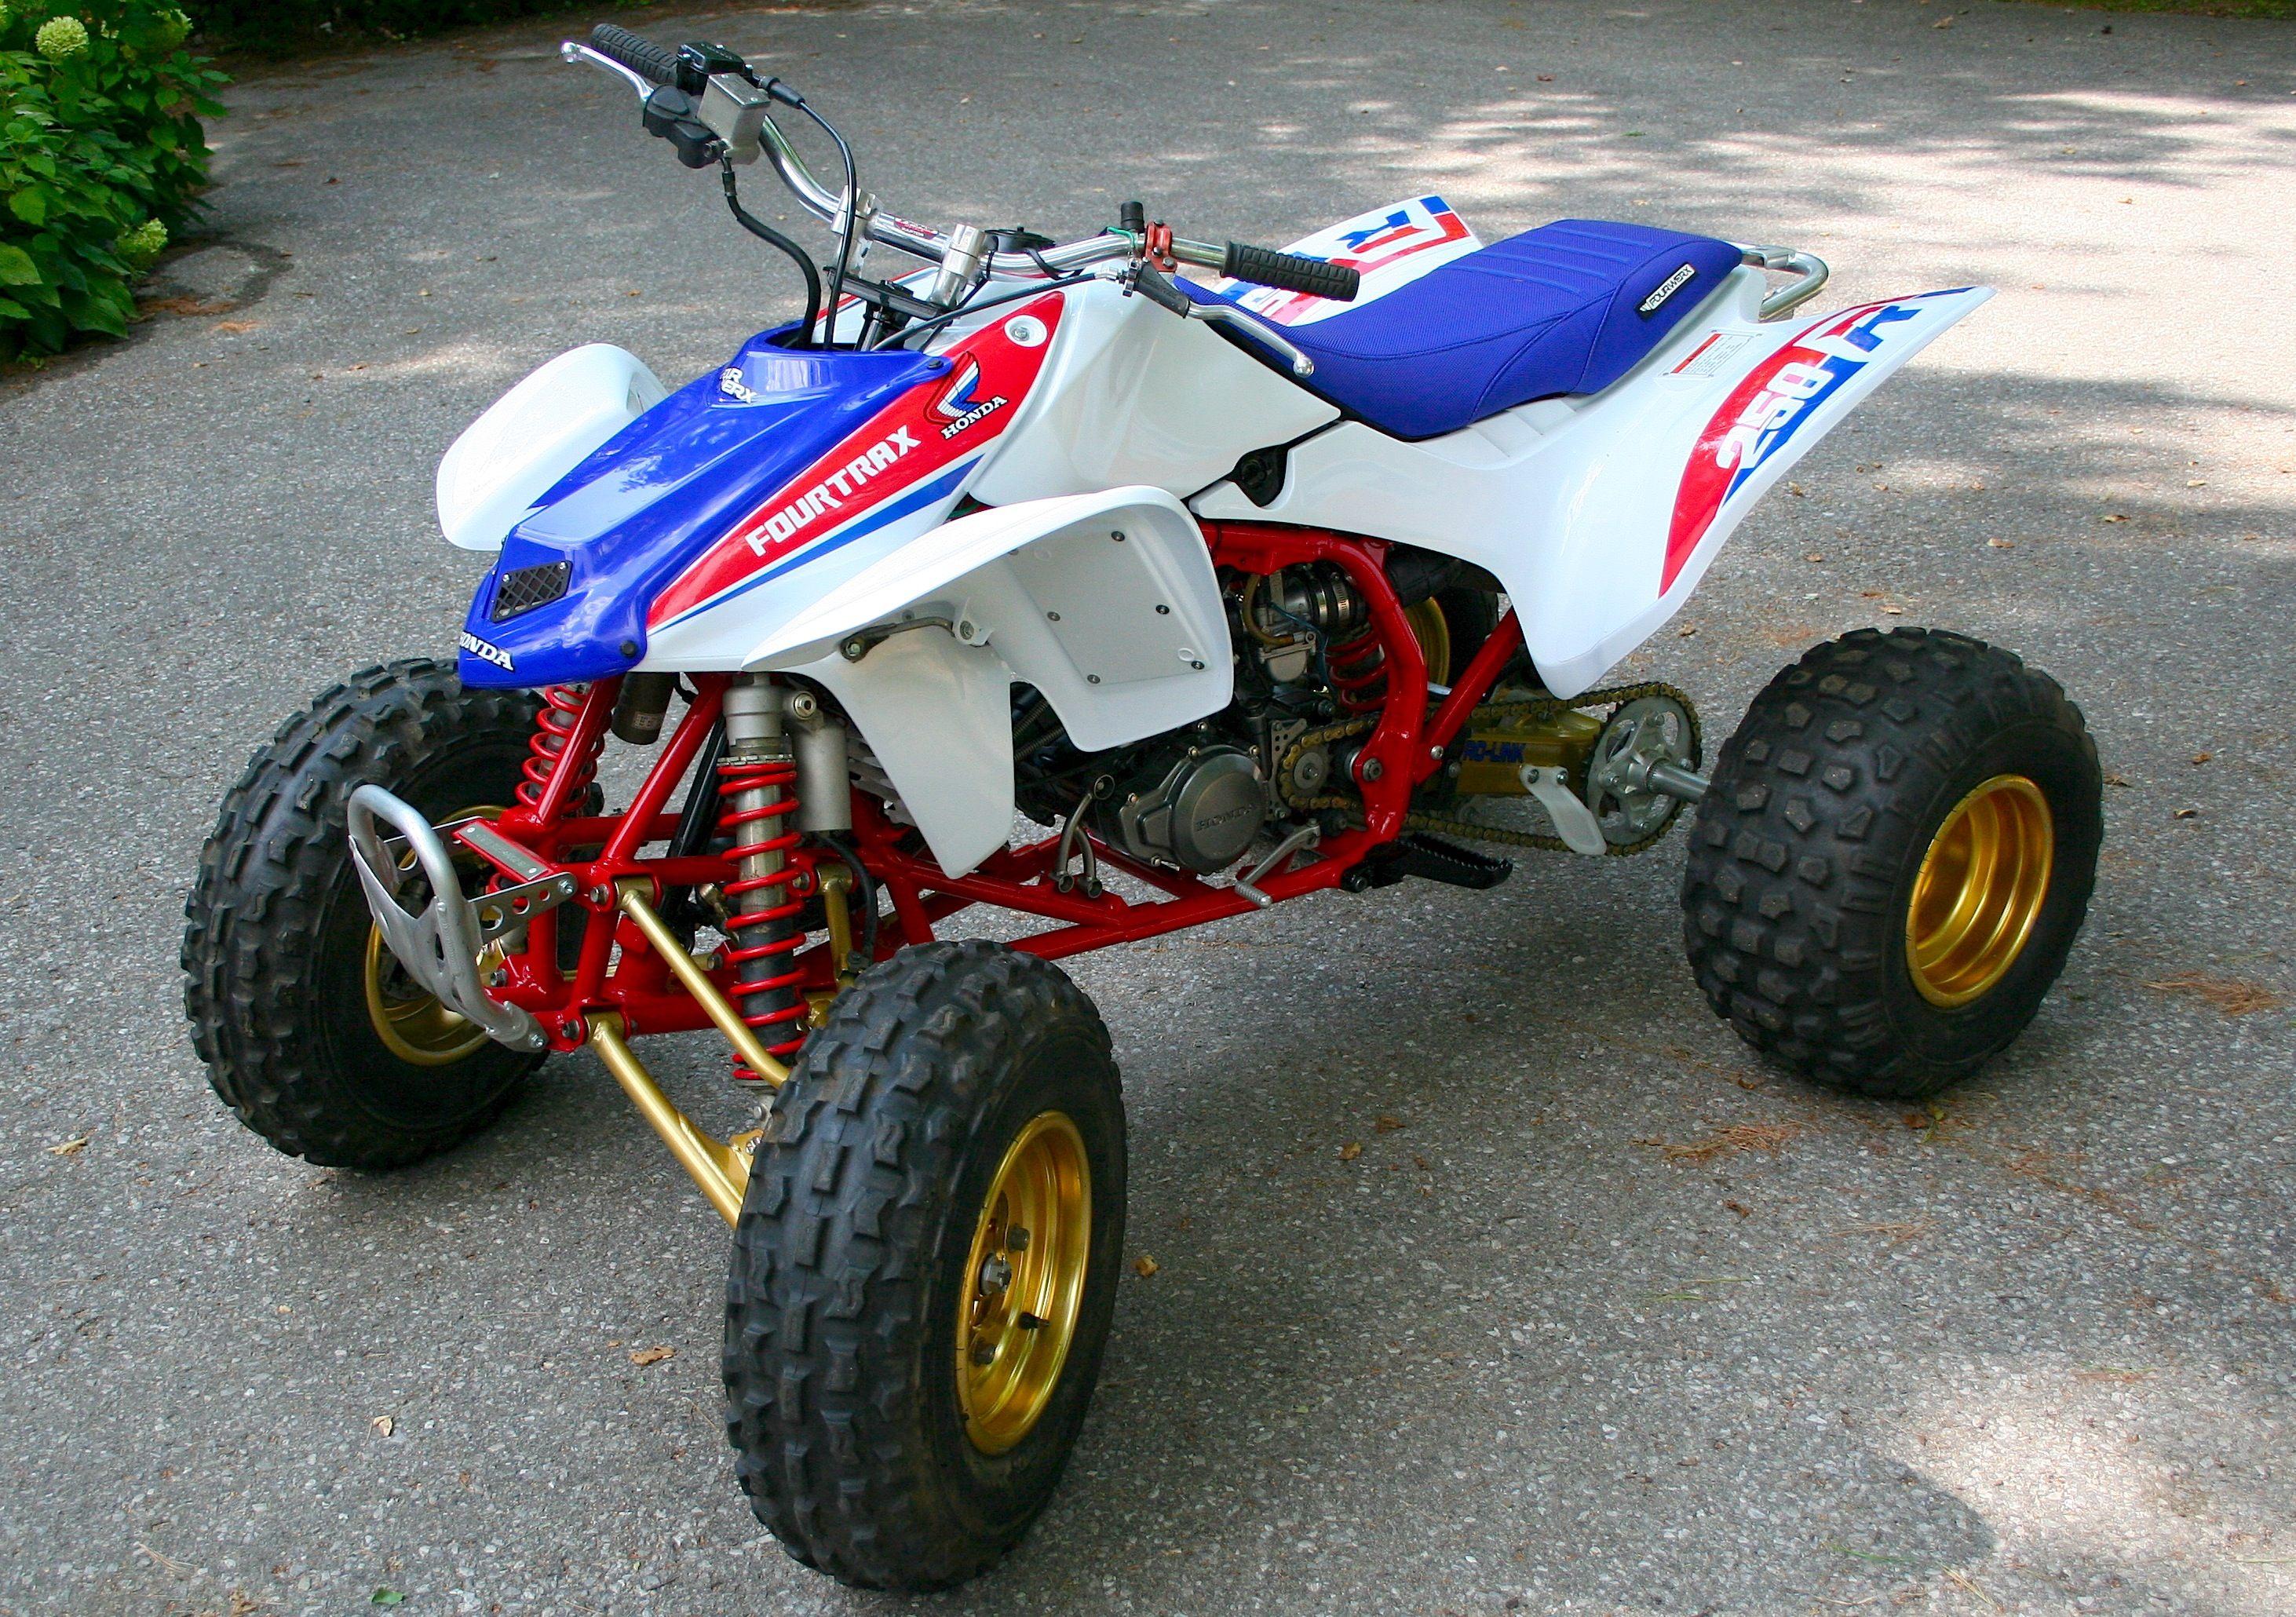 Honda trx450r photo - 4